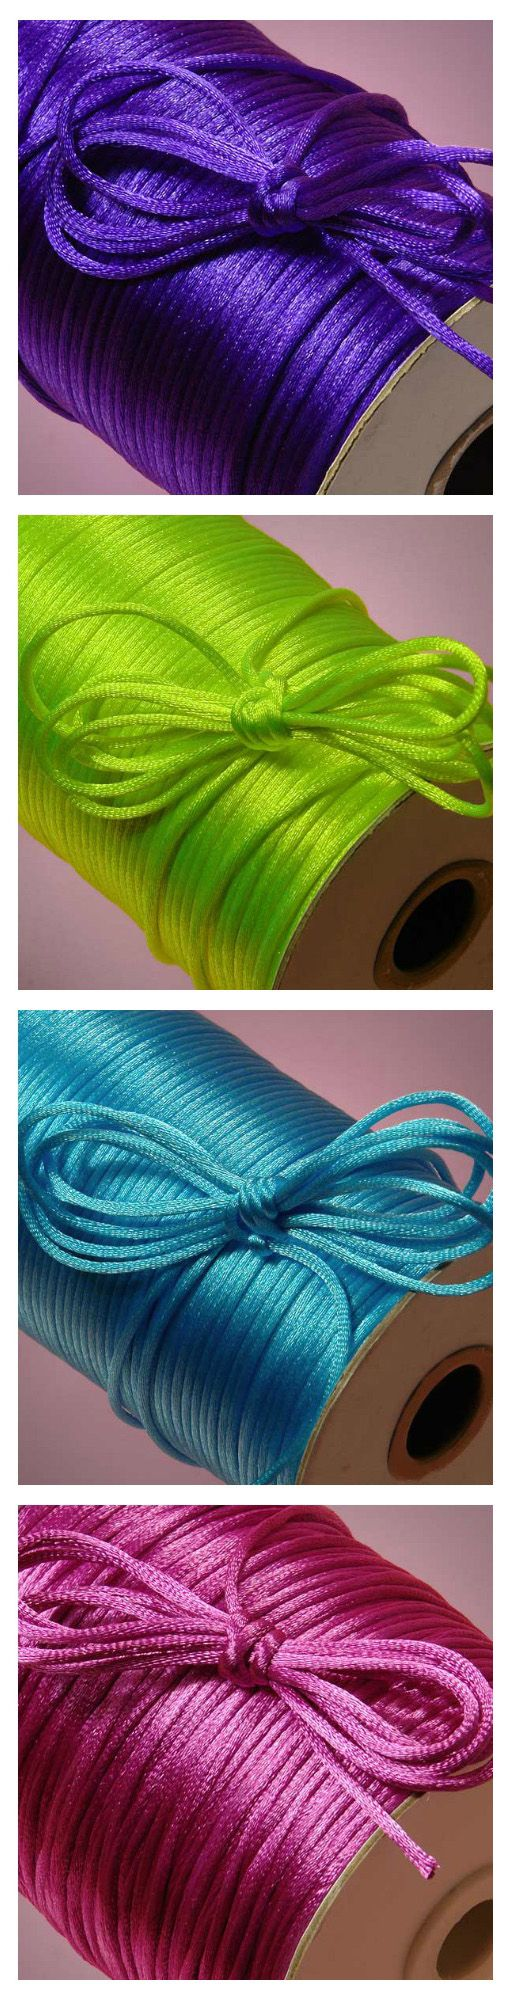 Bright and colorful rat tail satin cords for making jewelry, braided bracelets and necklaces, and wrapping gift with bright colors #rattailcord